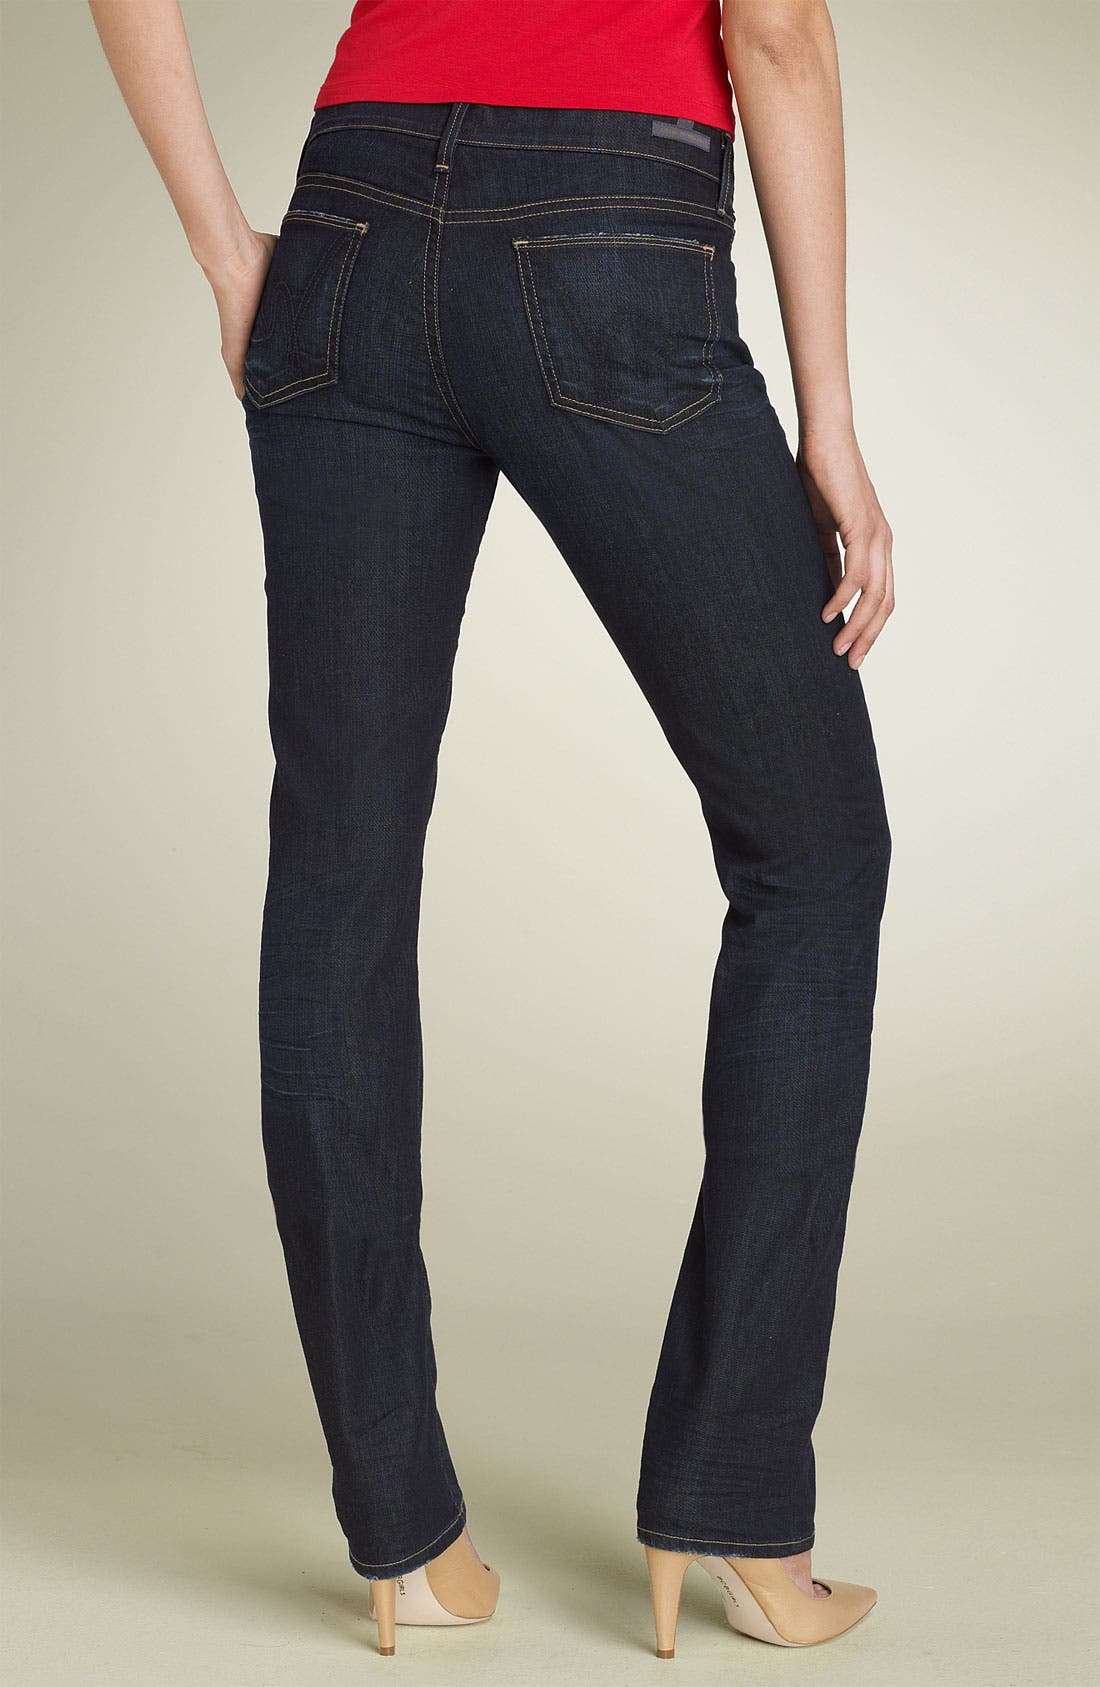 Main Image - Citizens of Humanity 'Ava' Straight Leg Stretch Jeans (Faith Wash)